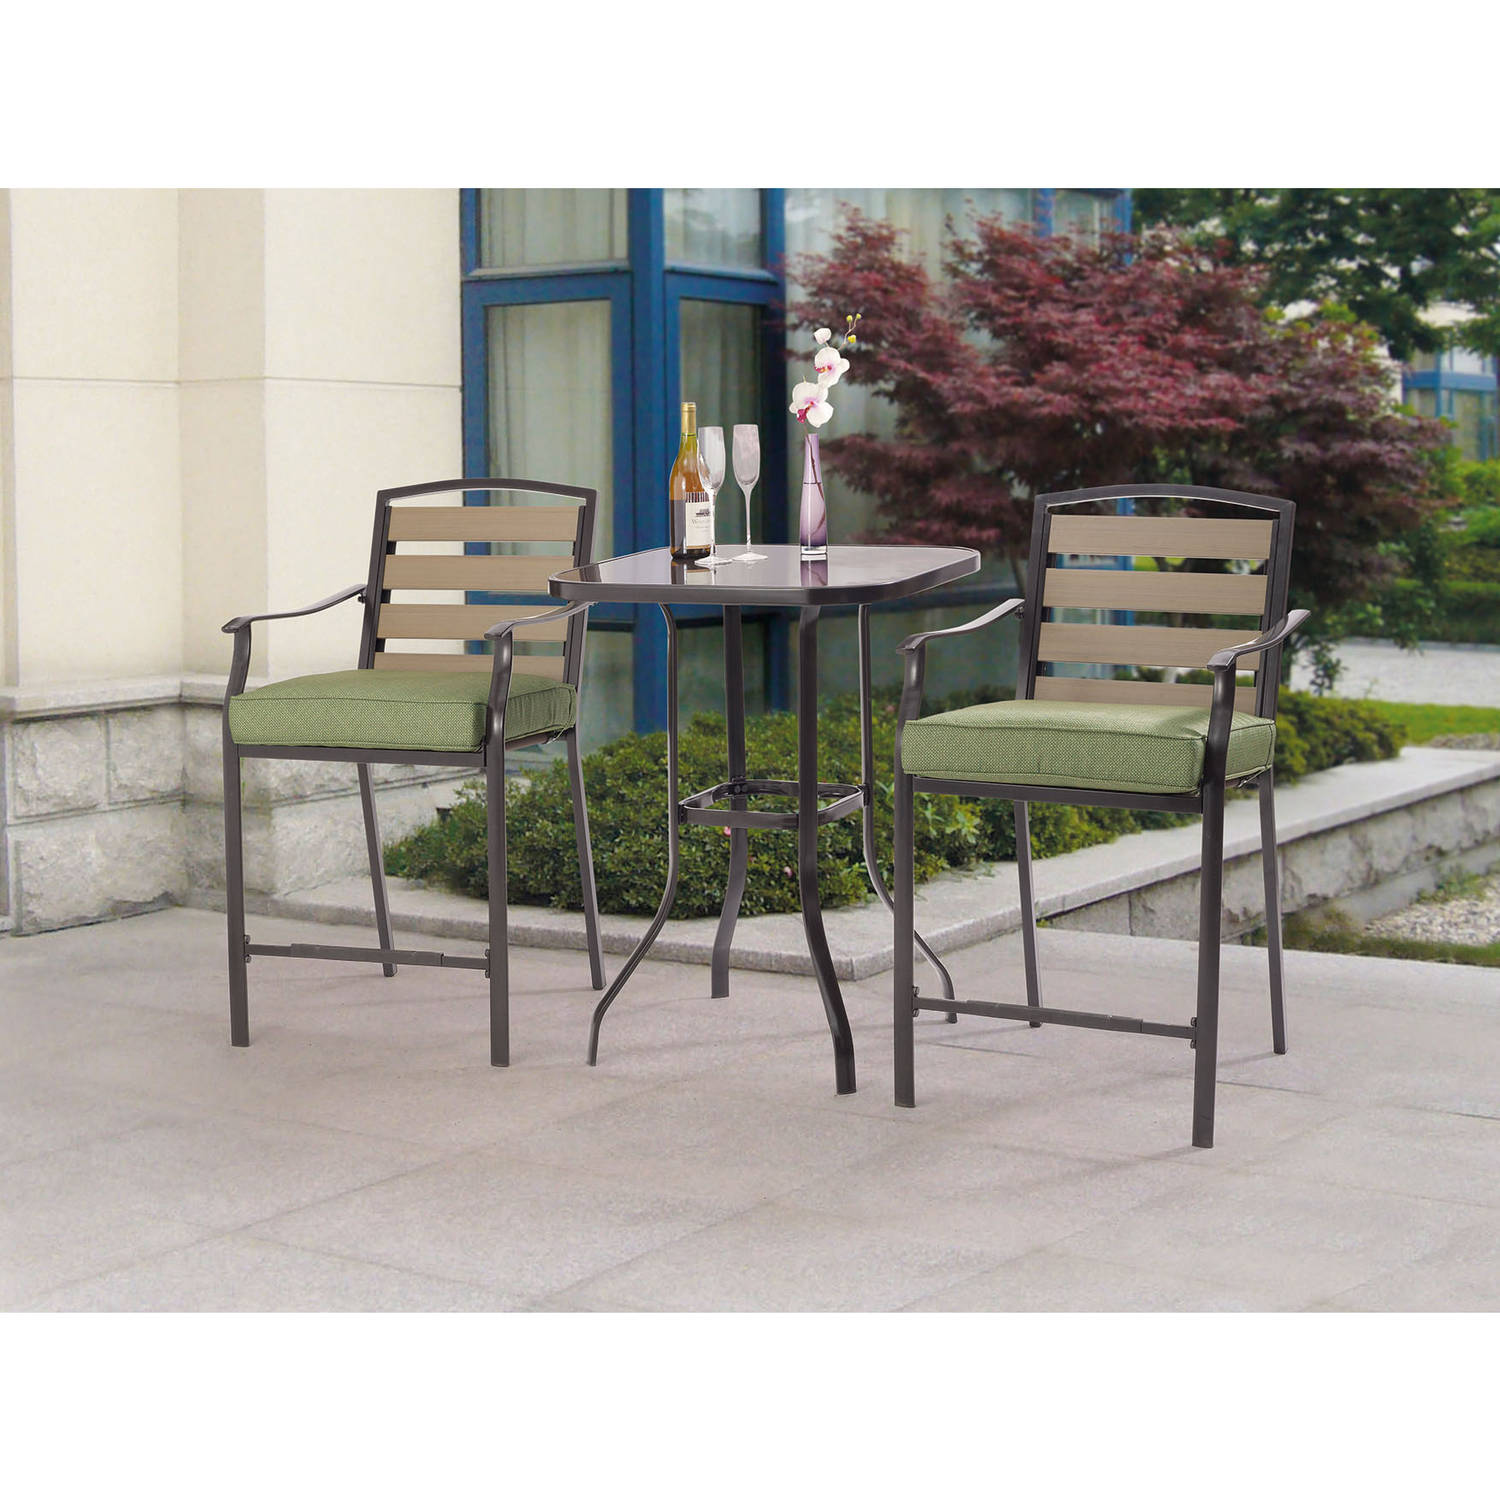 - Mainstays Oakmont Meadows 3-Piece Outdoor Bistro Set - Walmart.com